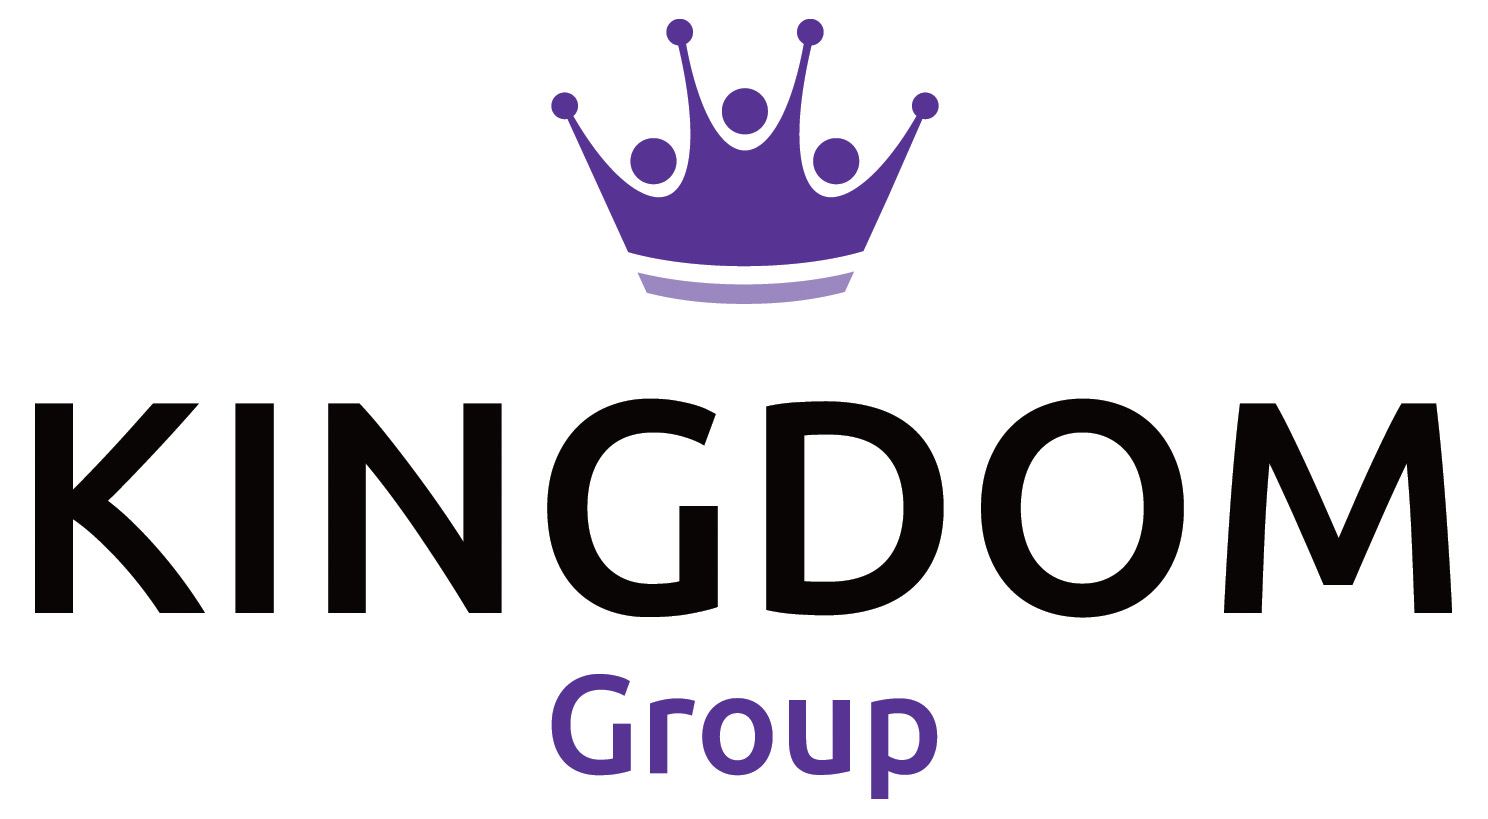 Kingdom Group